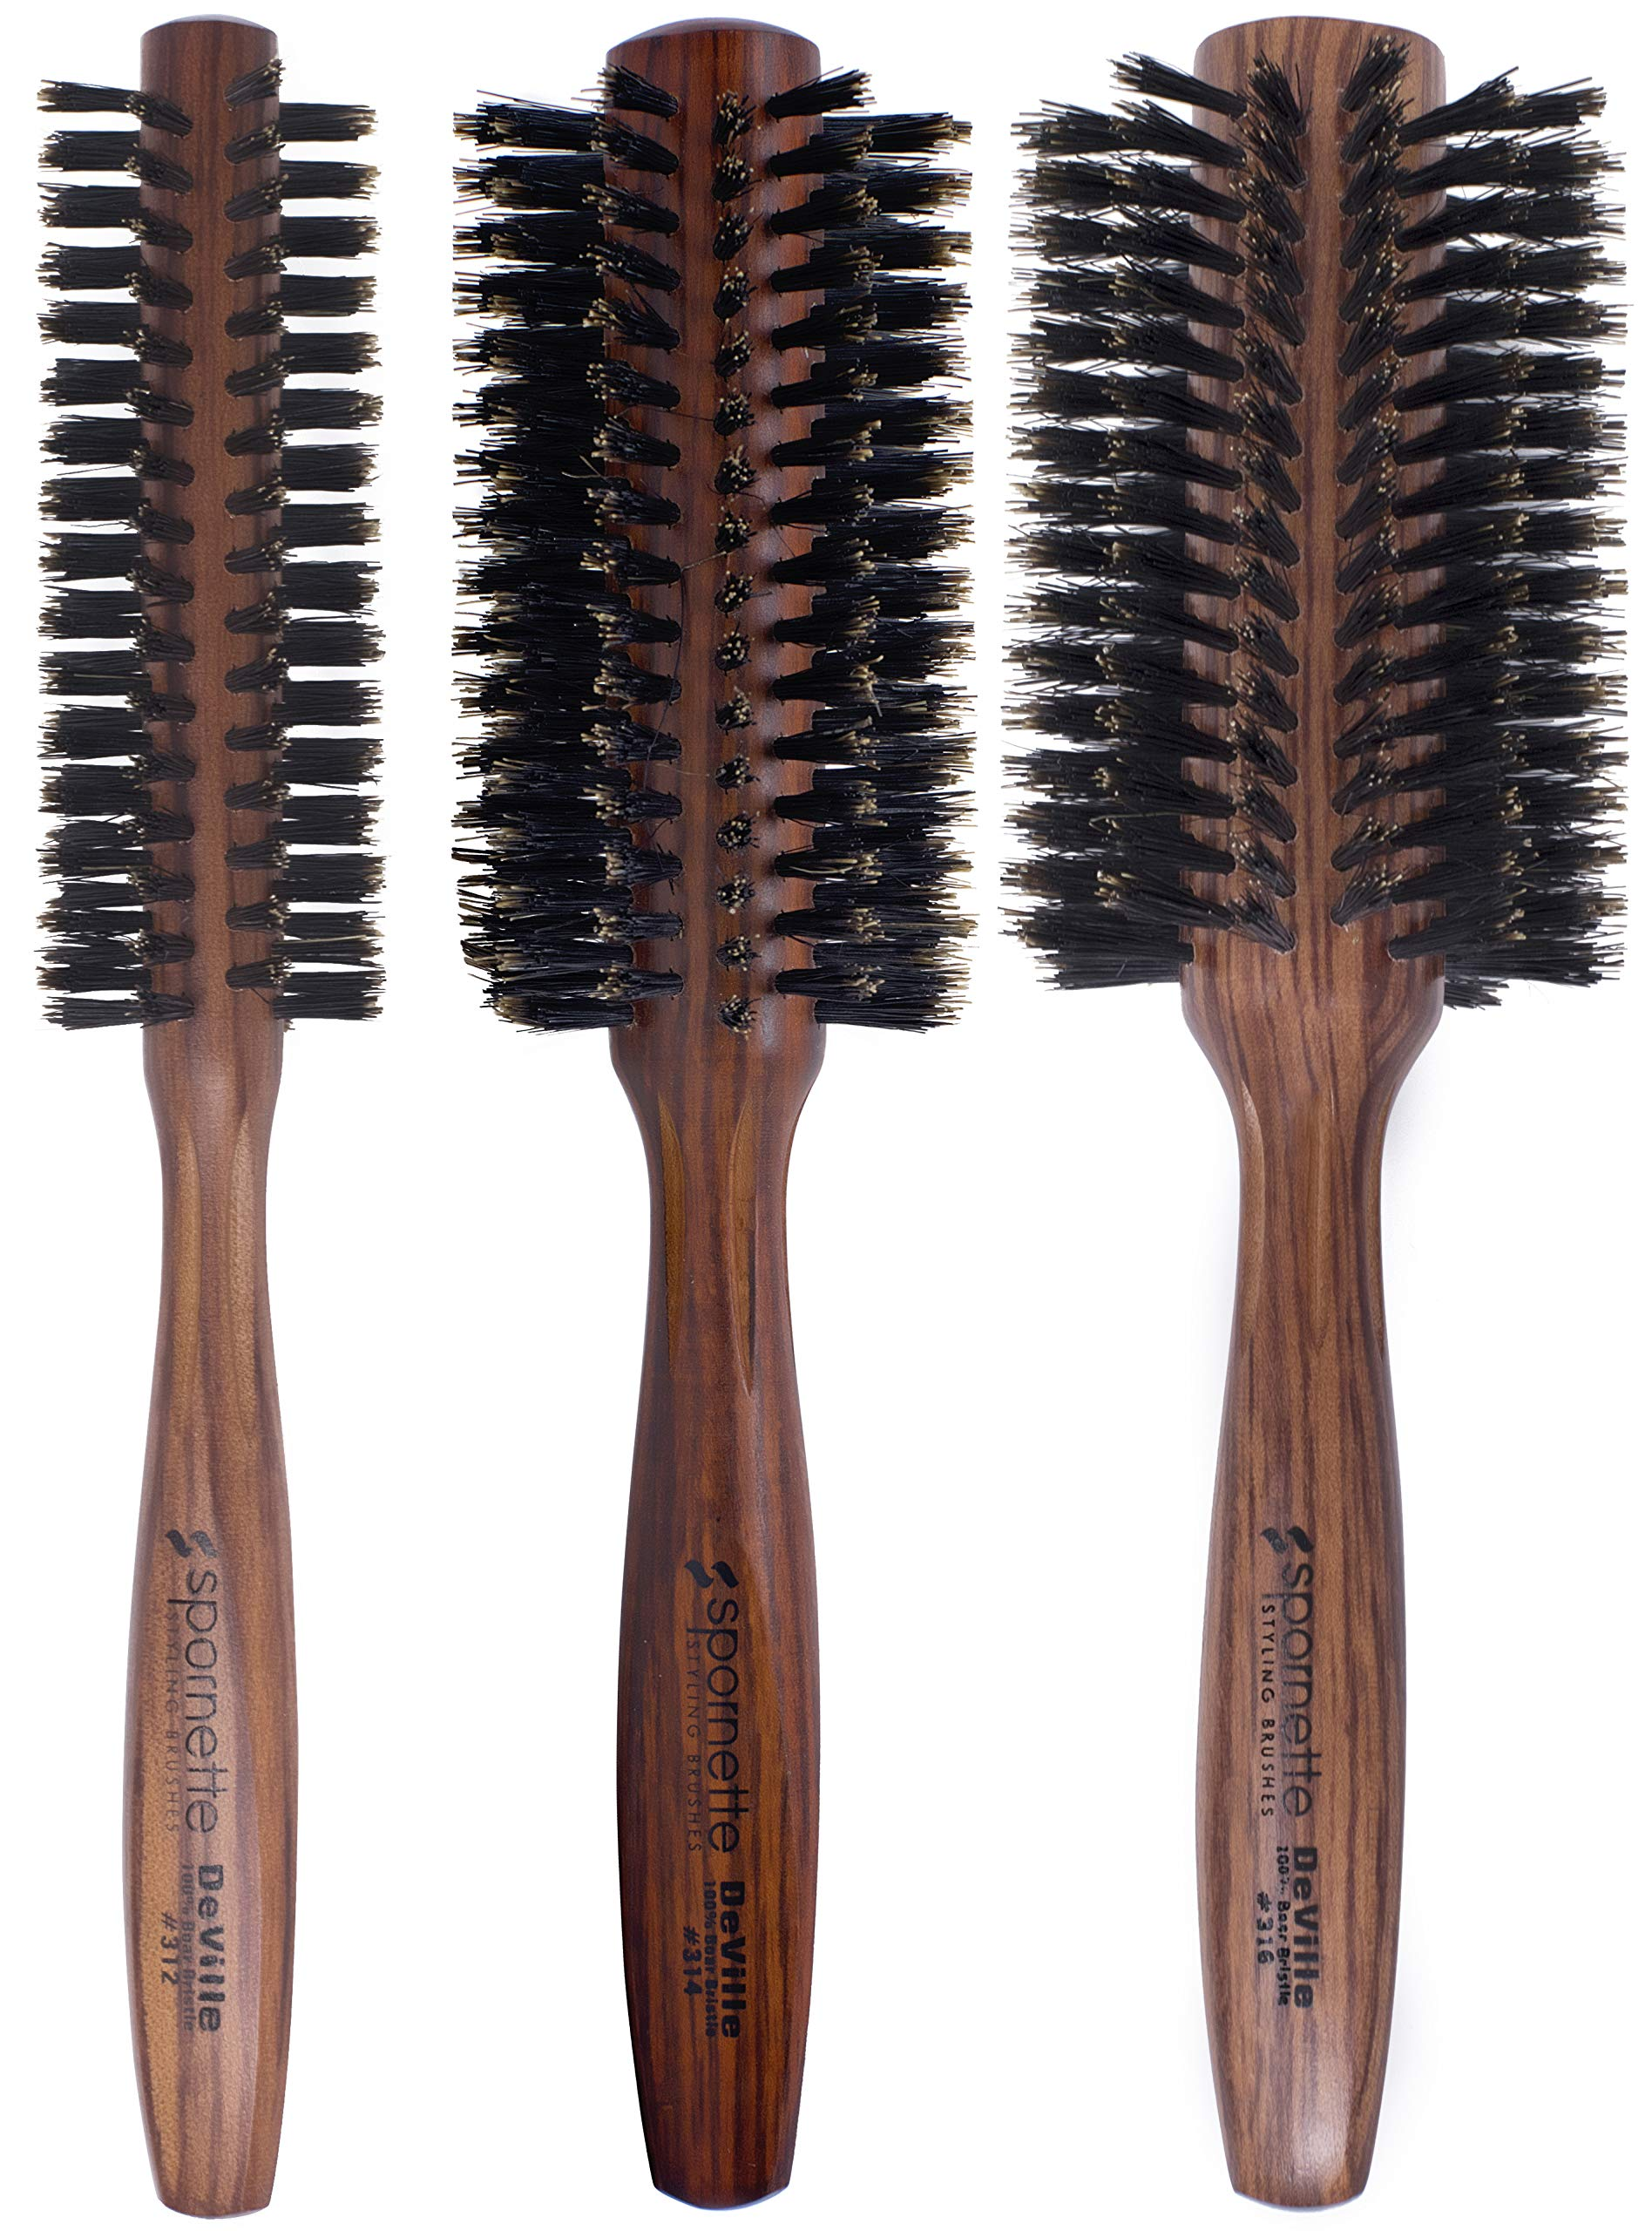 Spornette DeVille Boar Bristle Round Brush Set - Professional Round Hair Brushes Includes 1.5 inch Round Brush #312, 2 inch Round Brush #314, 2.5 inch Round Brush #316 - For Women, Men, Kids